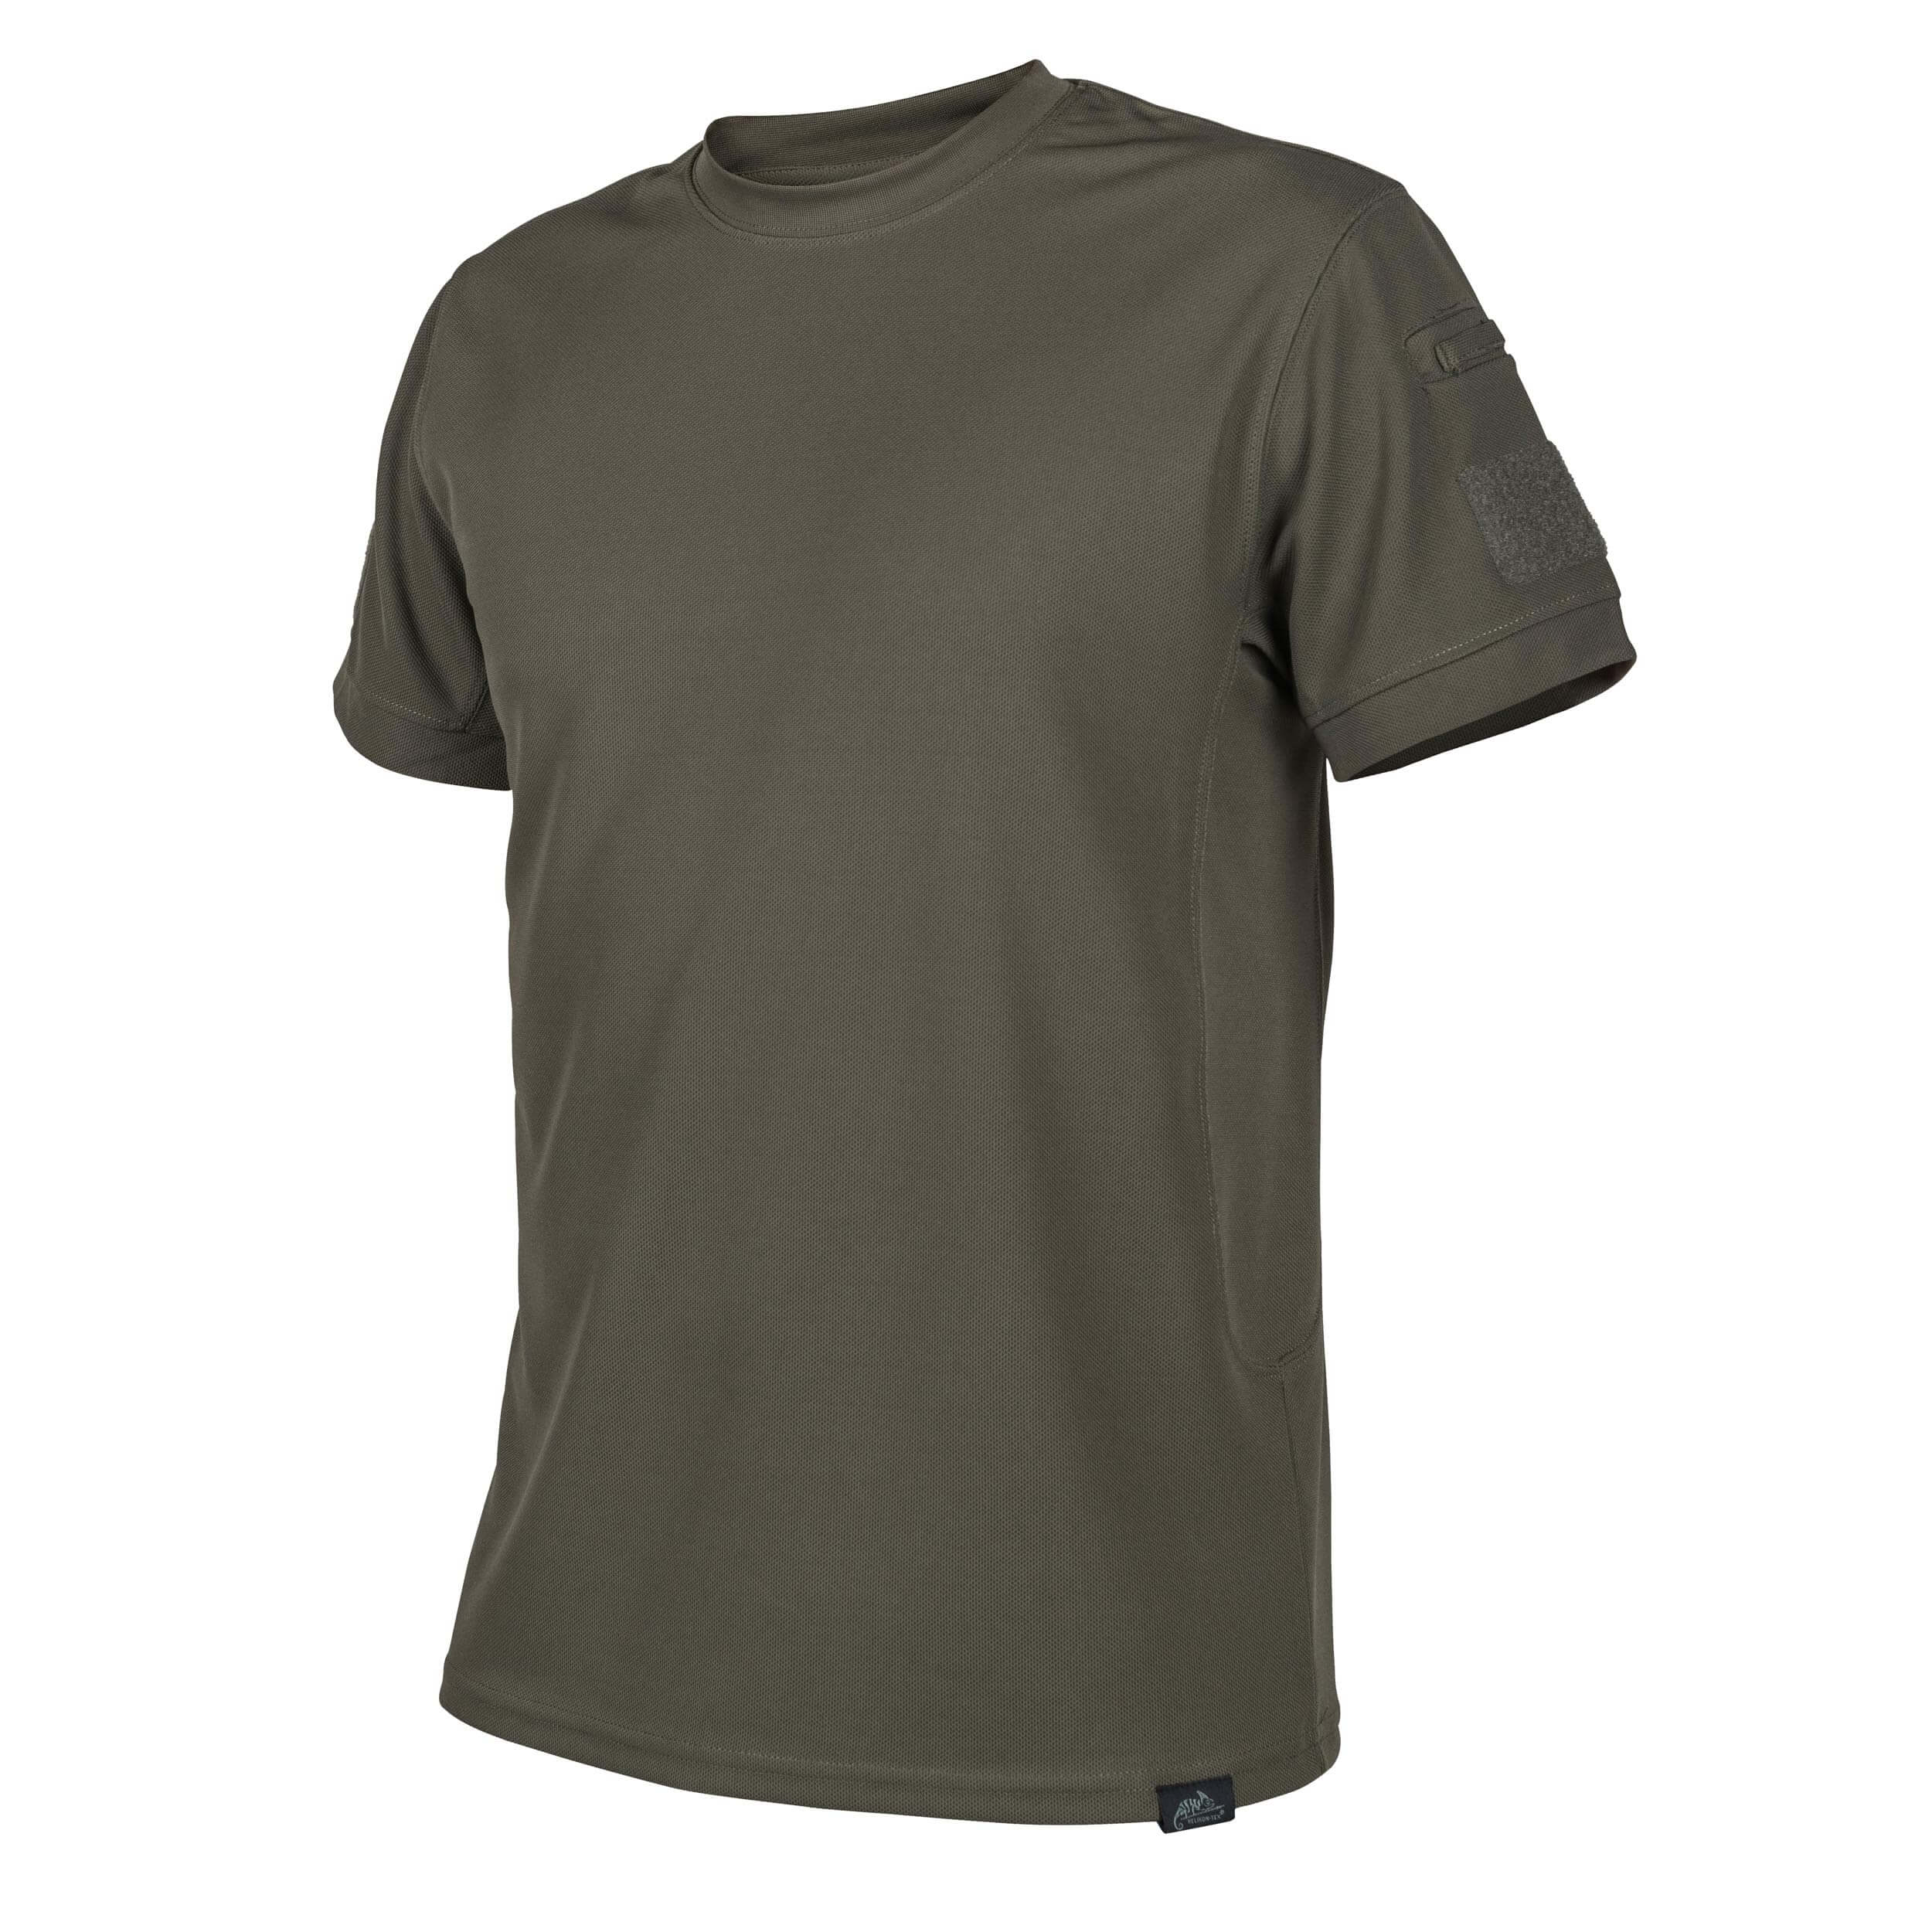 Helikon-Tex Tactical T-Shirt -Top Cool- Olive Green